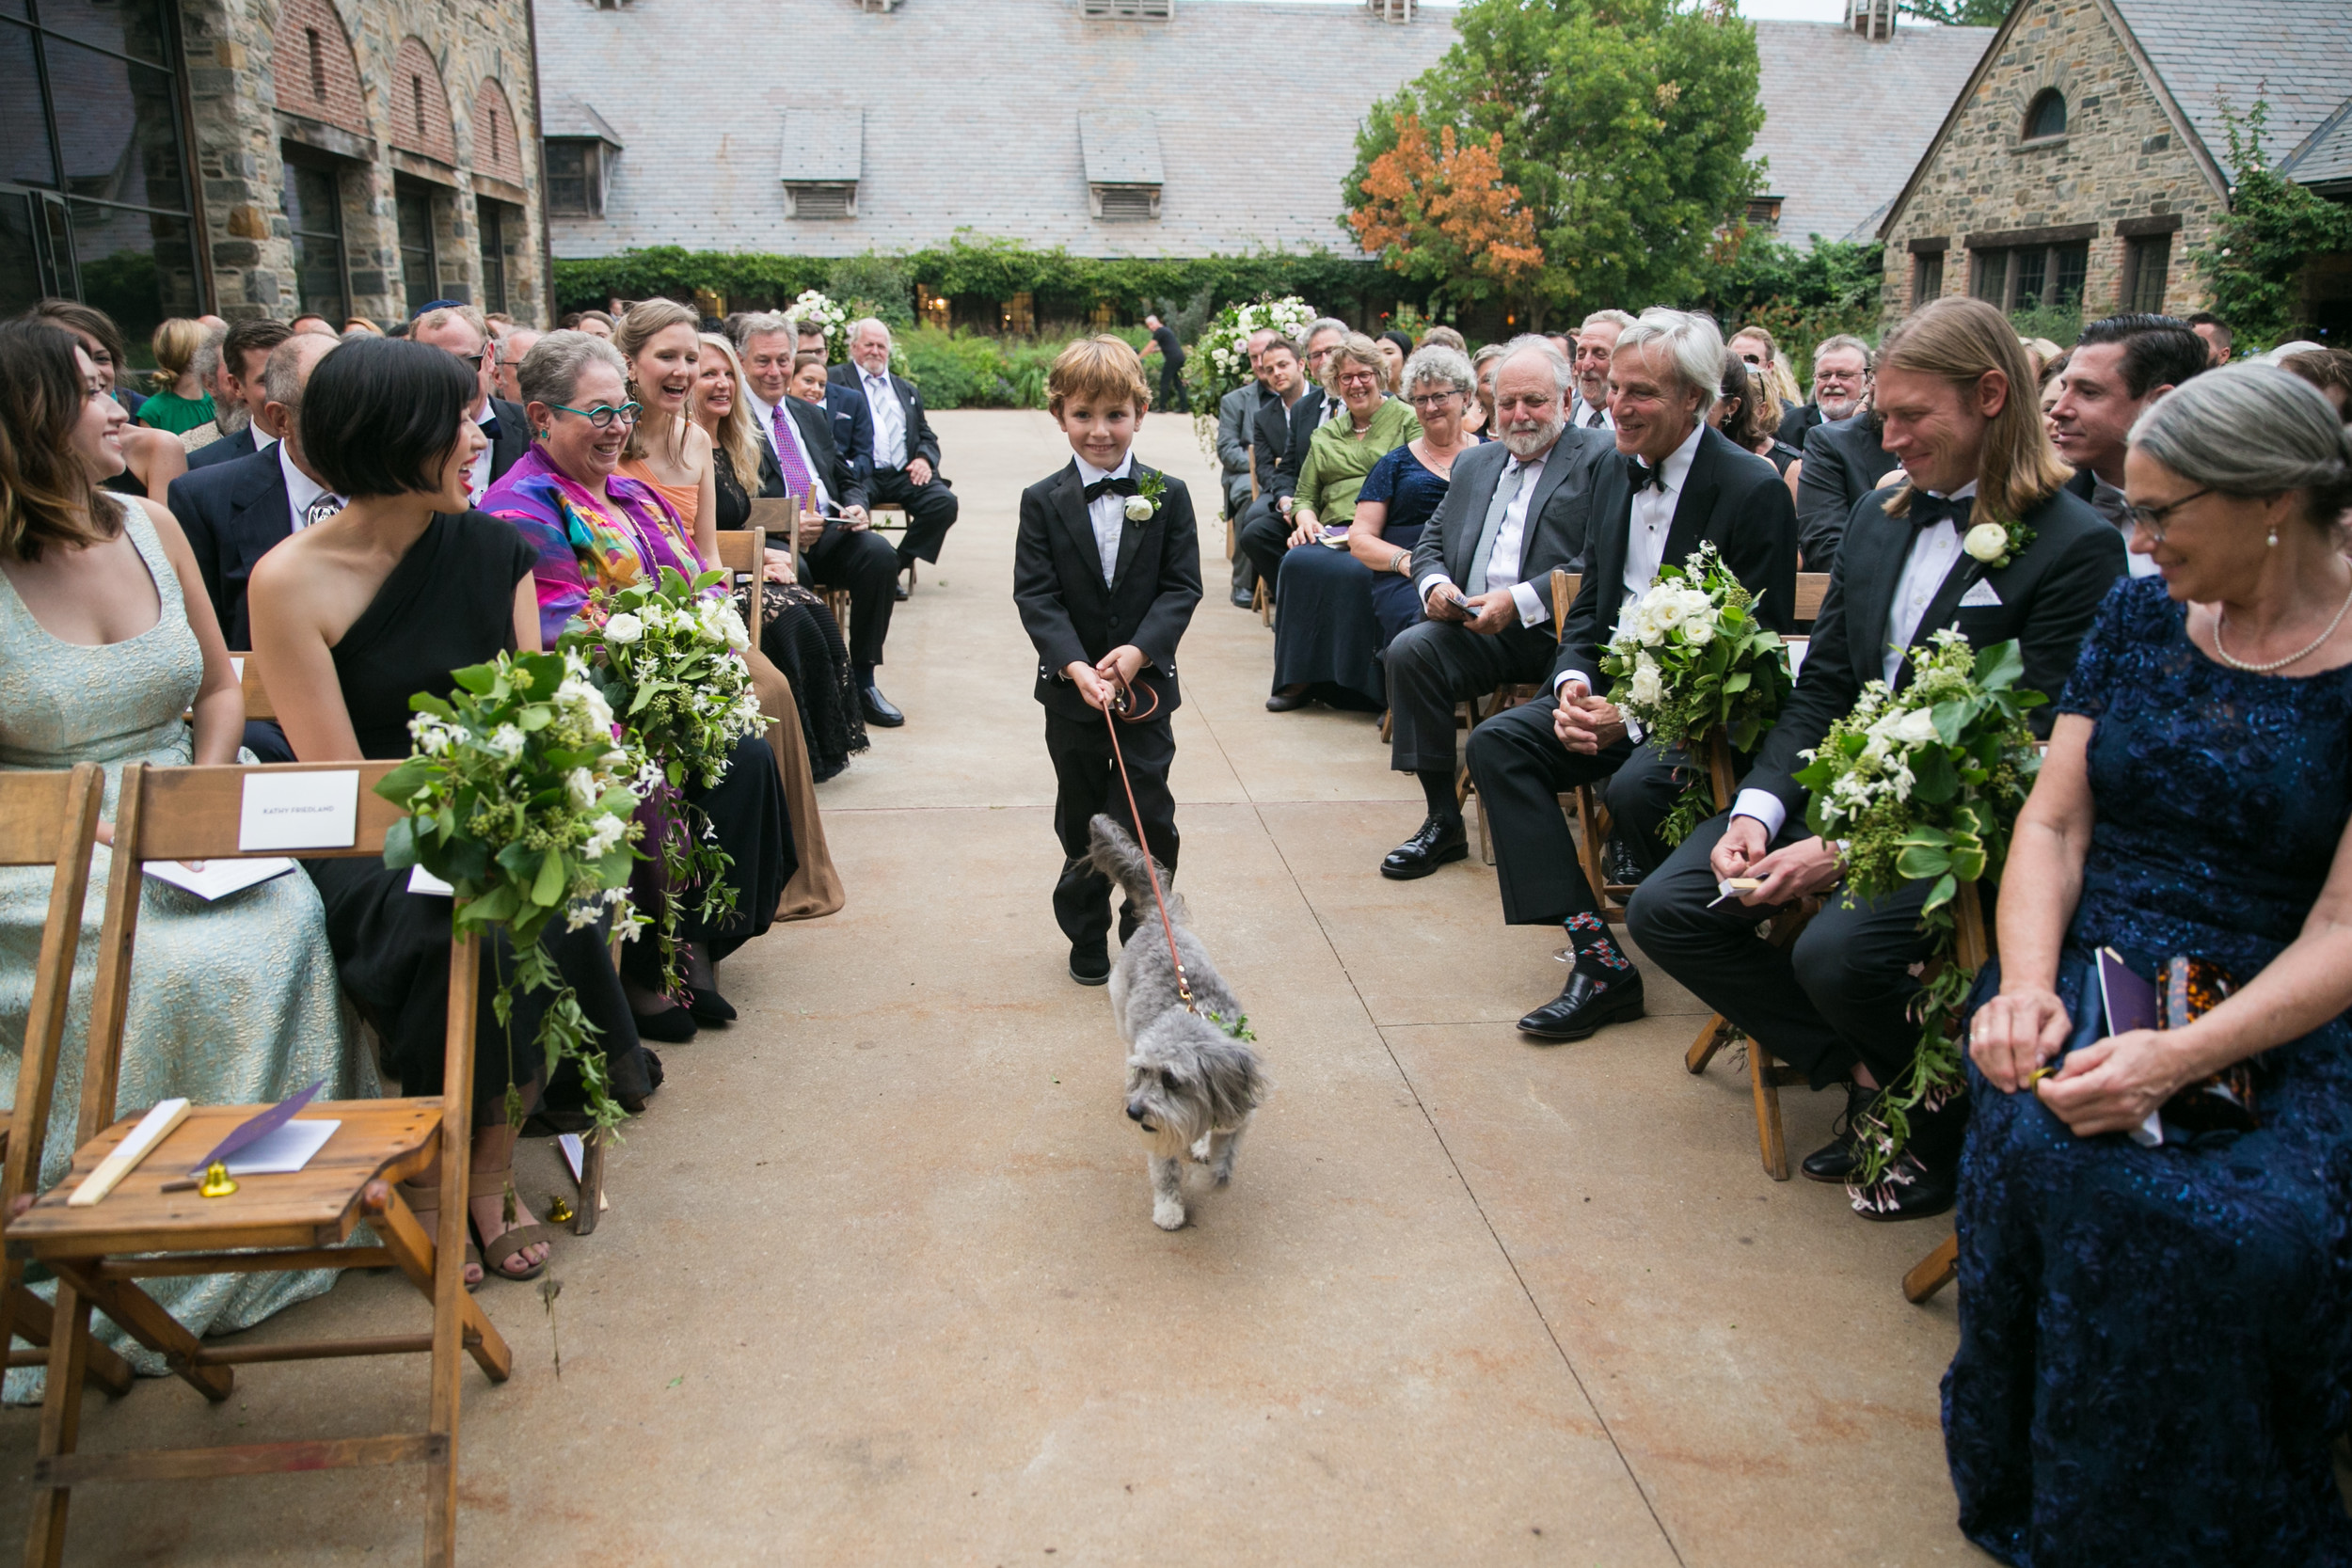 Wyatt Friedland Walked Silver Down The Aisle At A Wedding In Tarrytown Thanks To Efforts